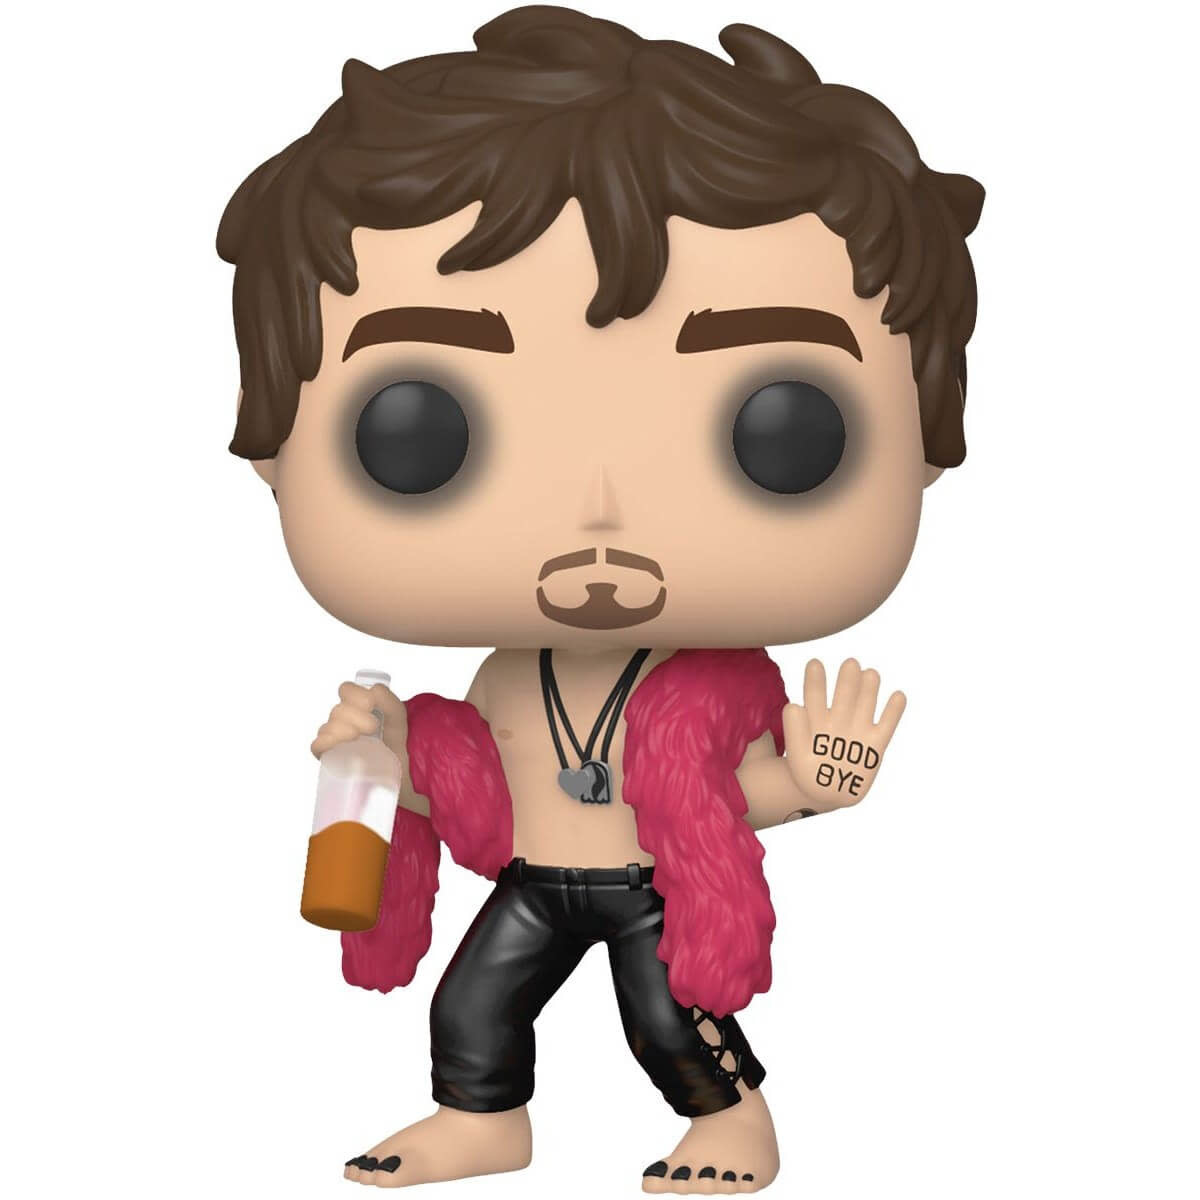 FUNKO Pop! TV: The Umbrella Academy - Klaus Hargreeves